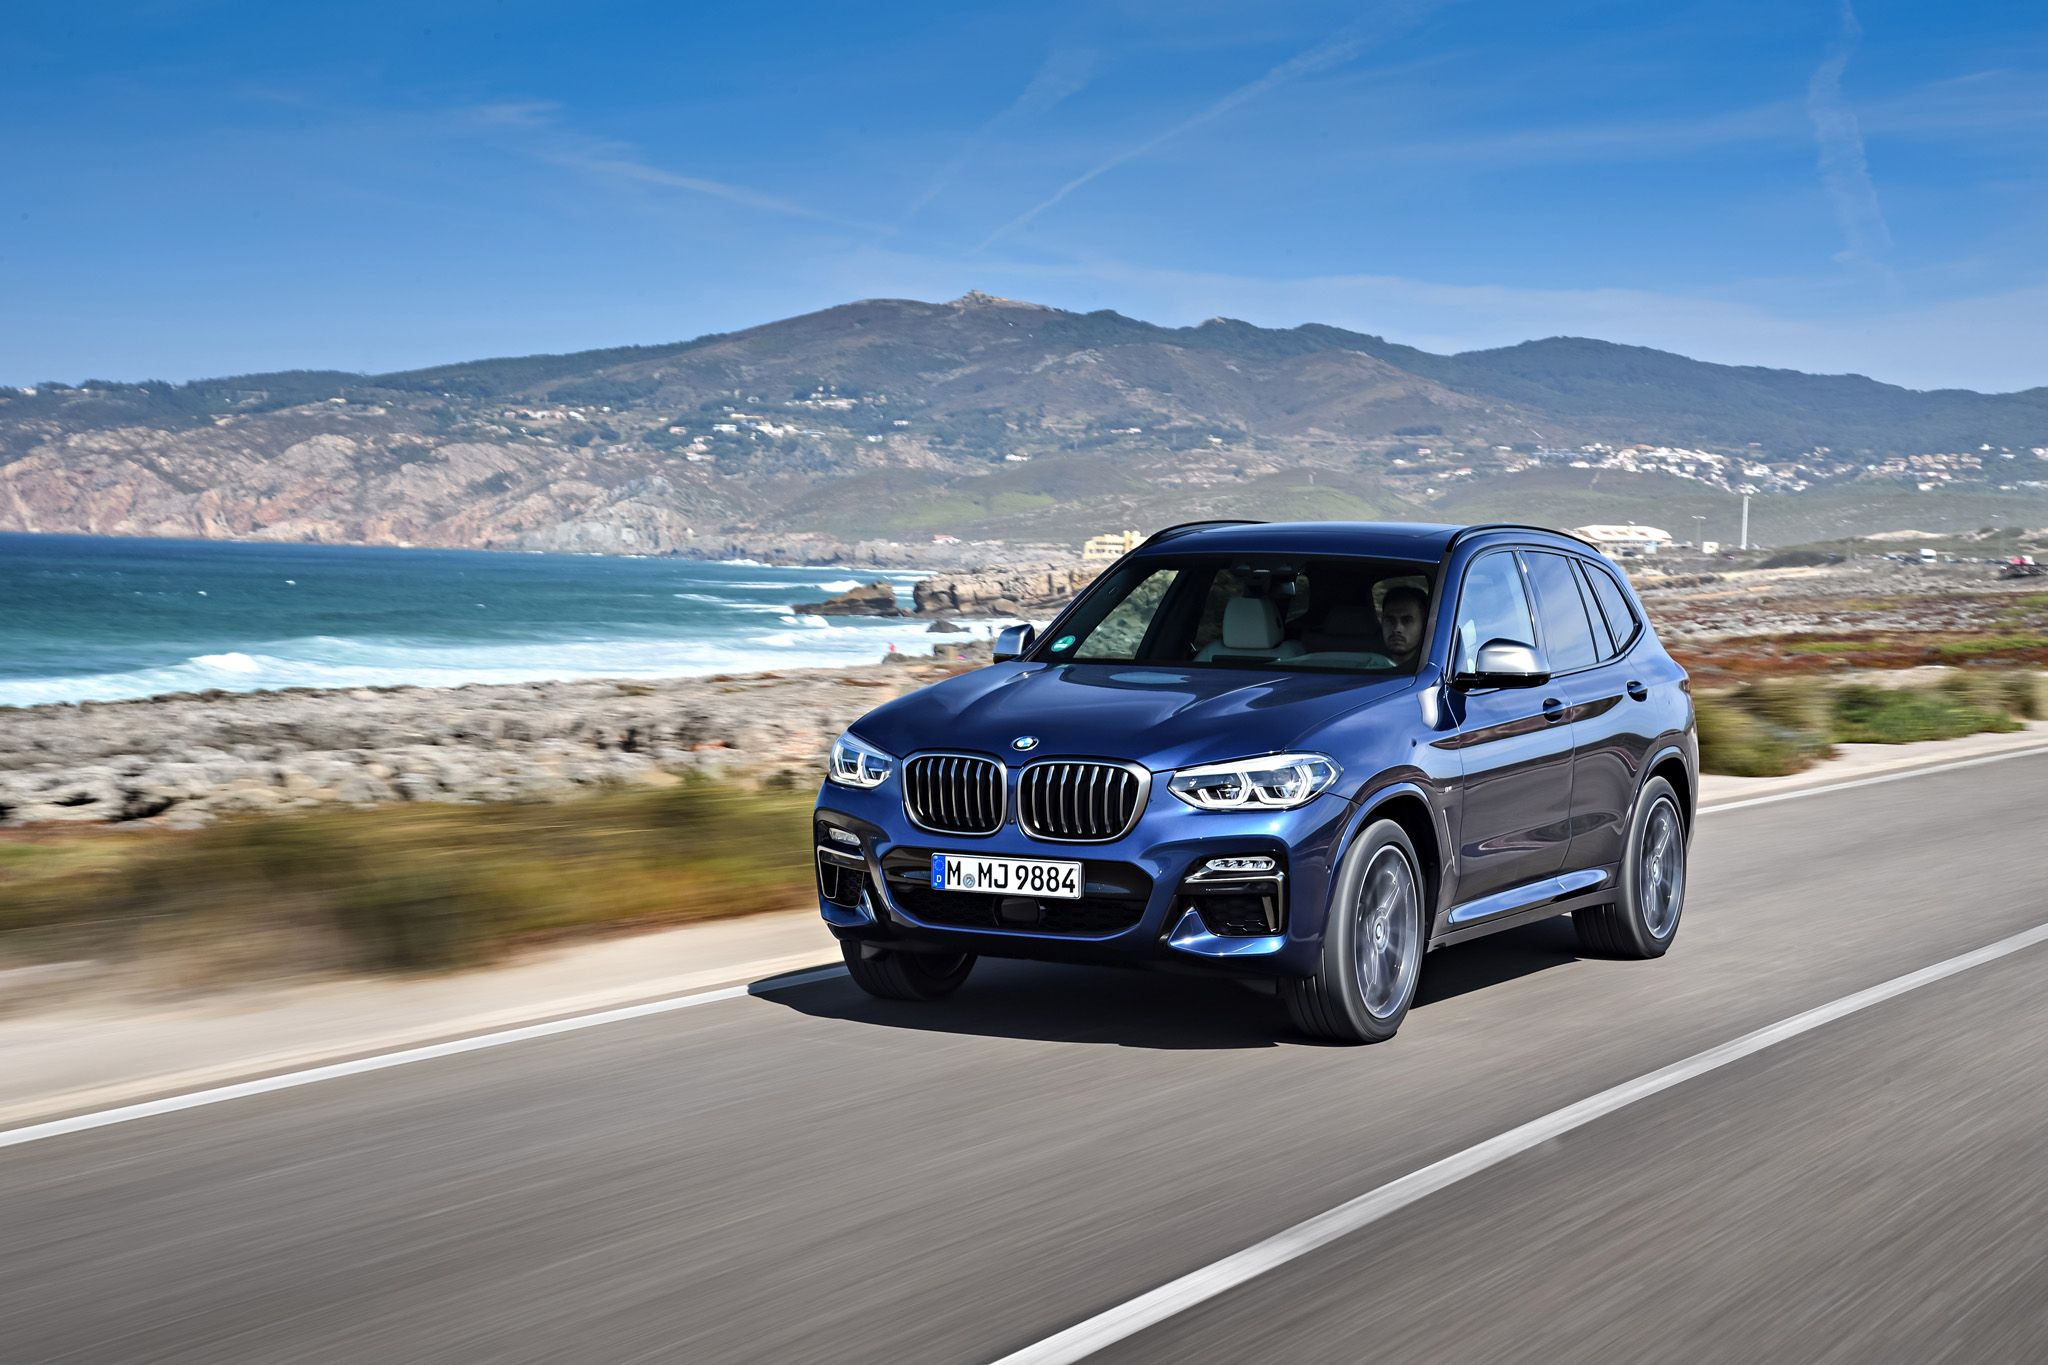 Pin By Bmw Life On Cars In 2020 Bmw Bmw X3 New Bmw X3